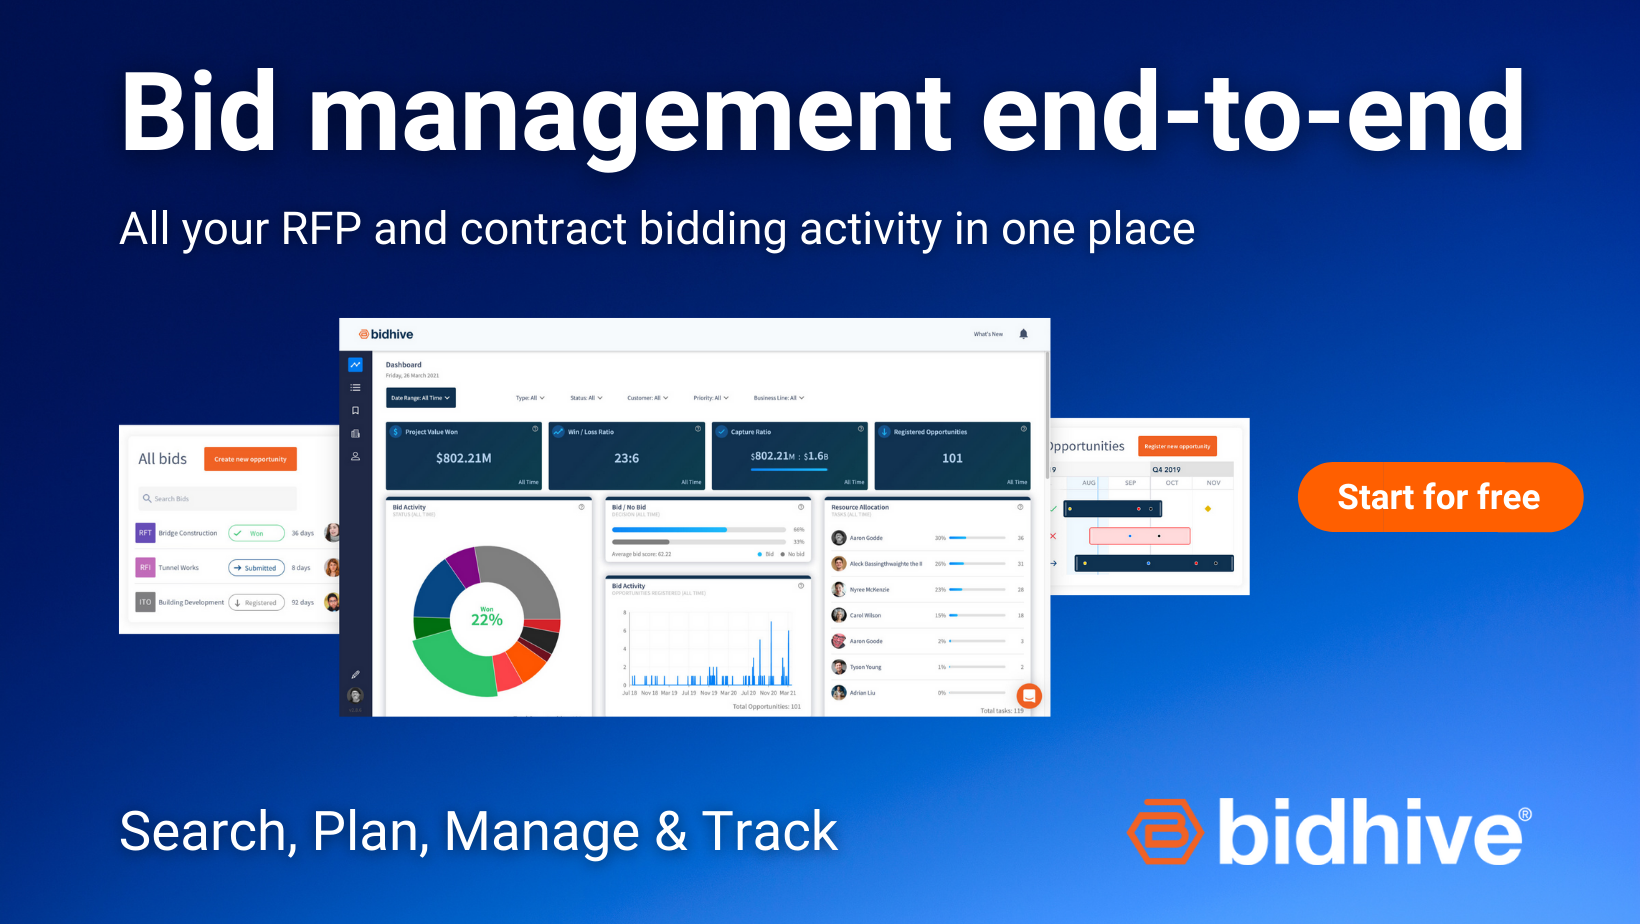 Plan, manage & track your RFP and contract bidding activity with Bidhive